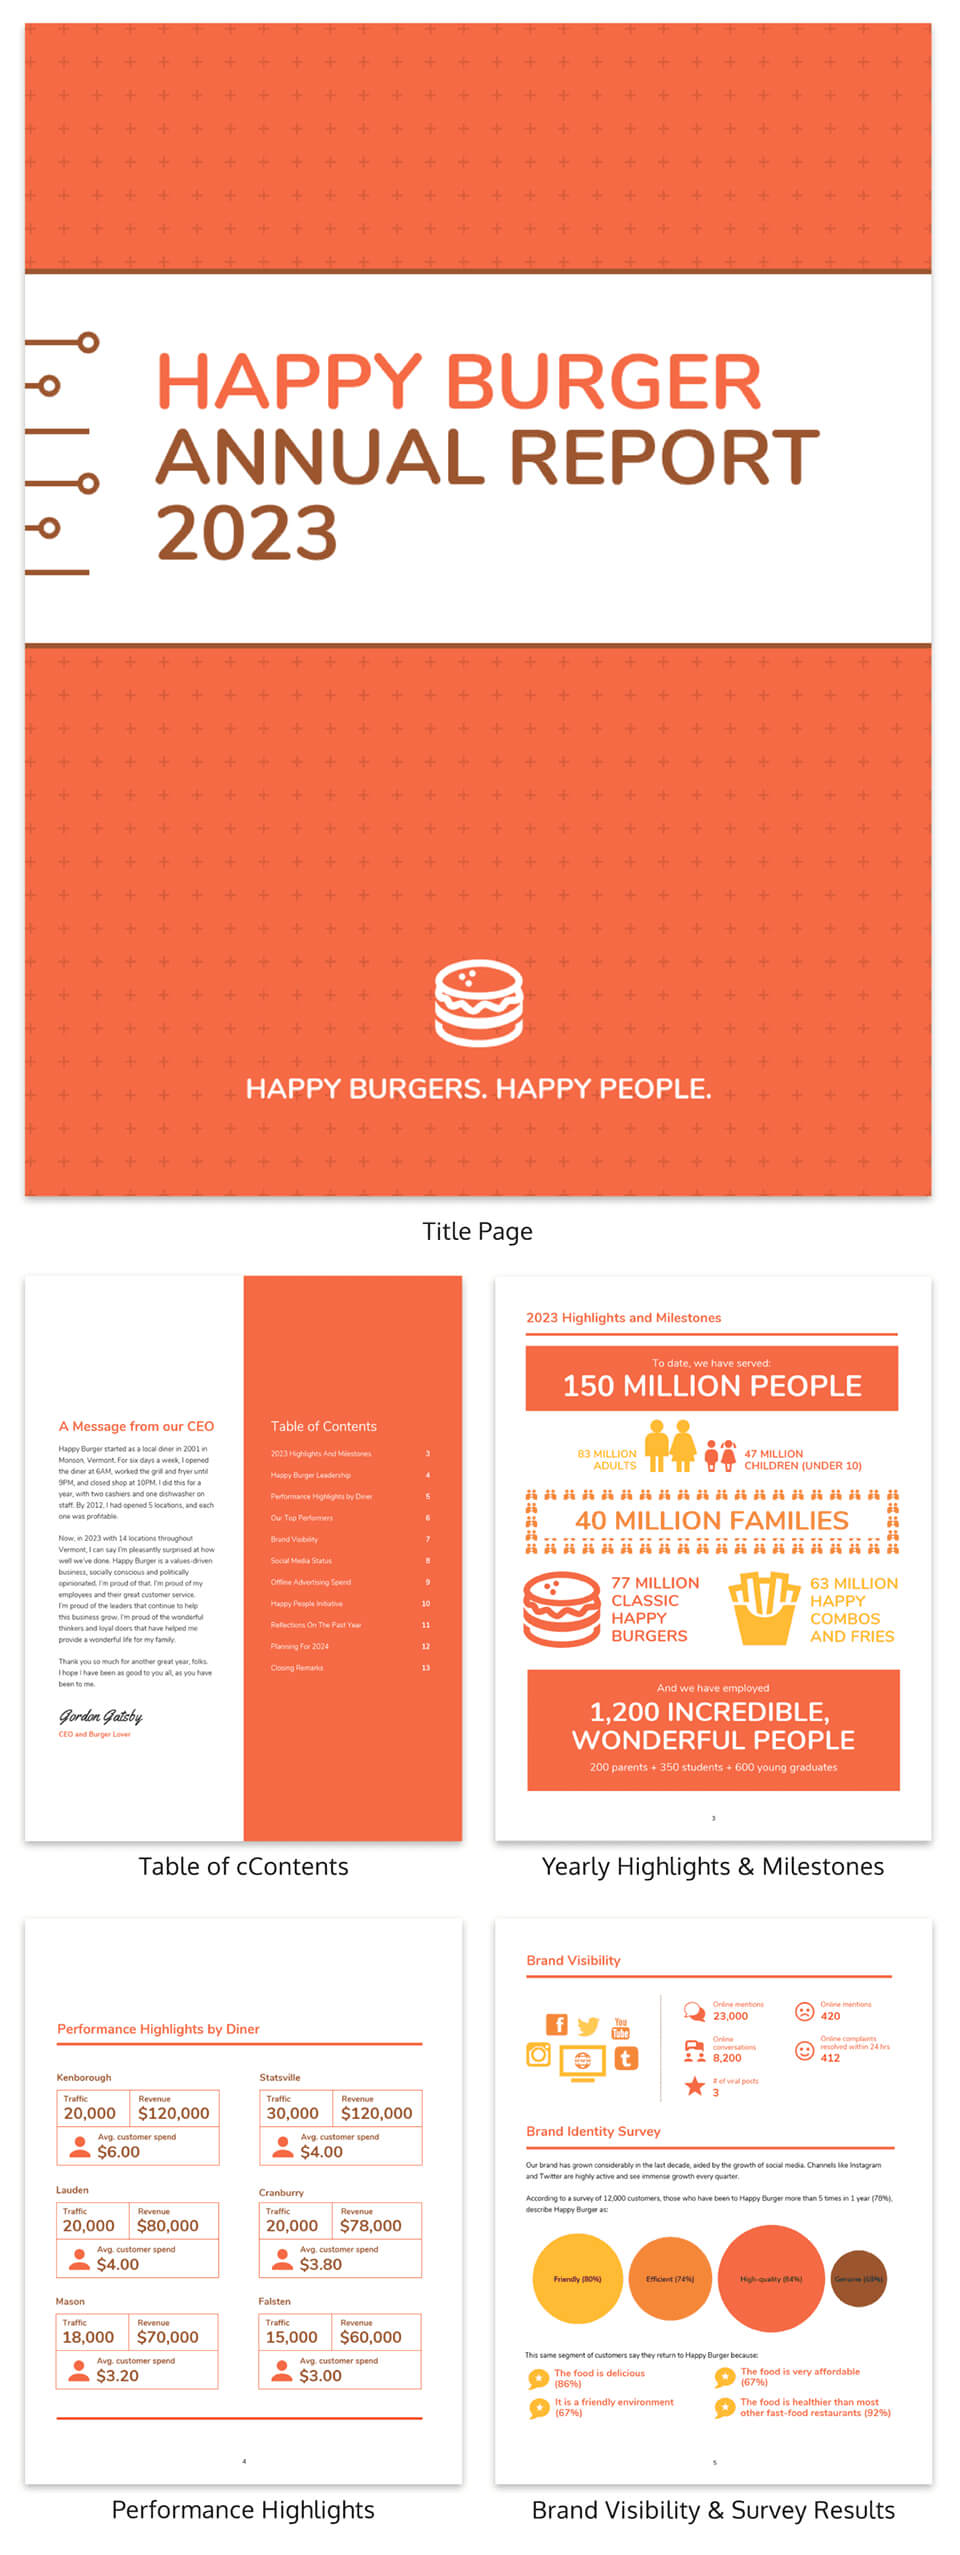 55+ Customizable Annual Report Design Templates, Examples & Tips Regarding Annual Report Template Word Free Download